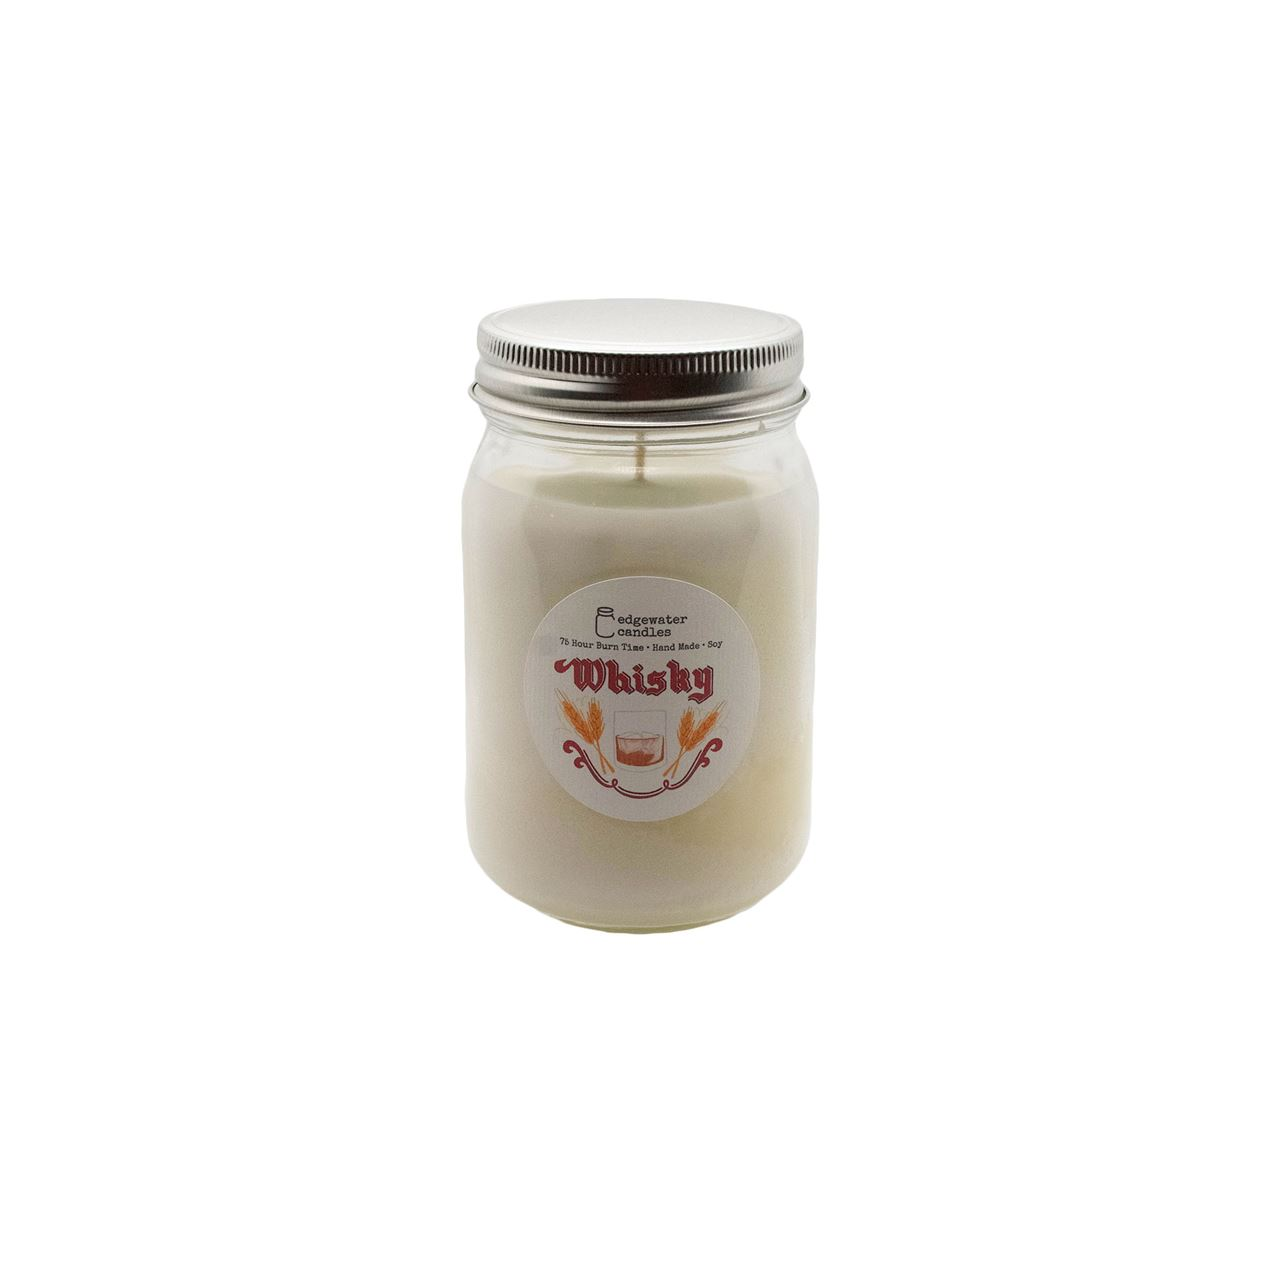 Whisky Jar by Edgewater Candles